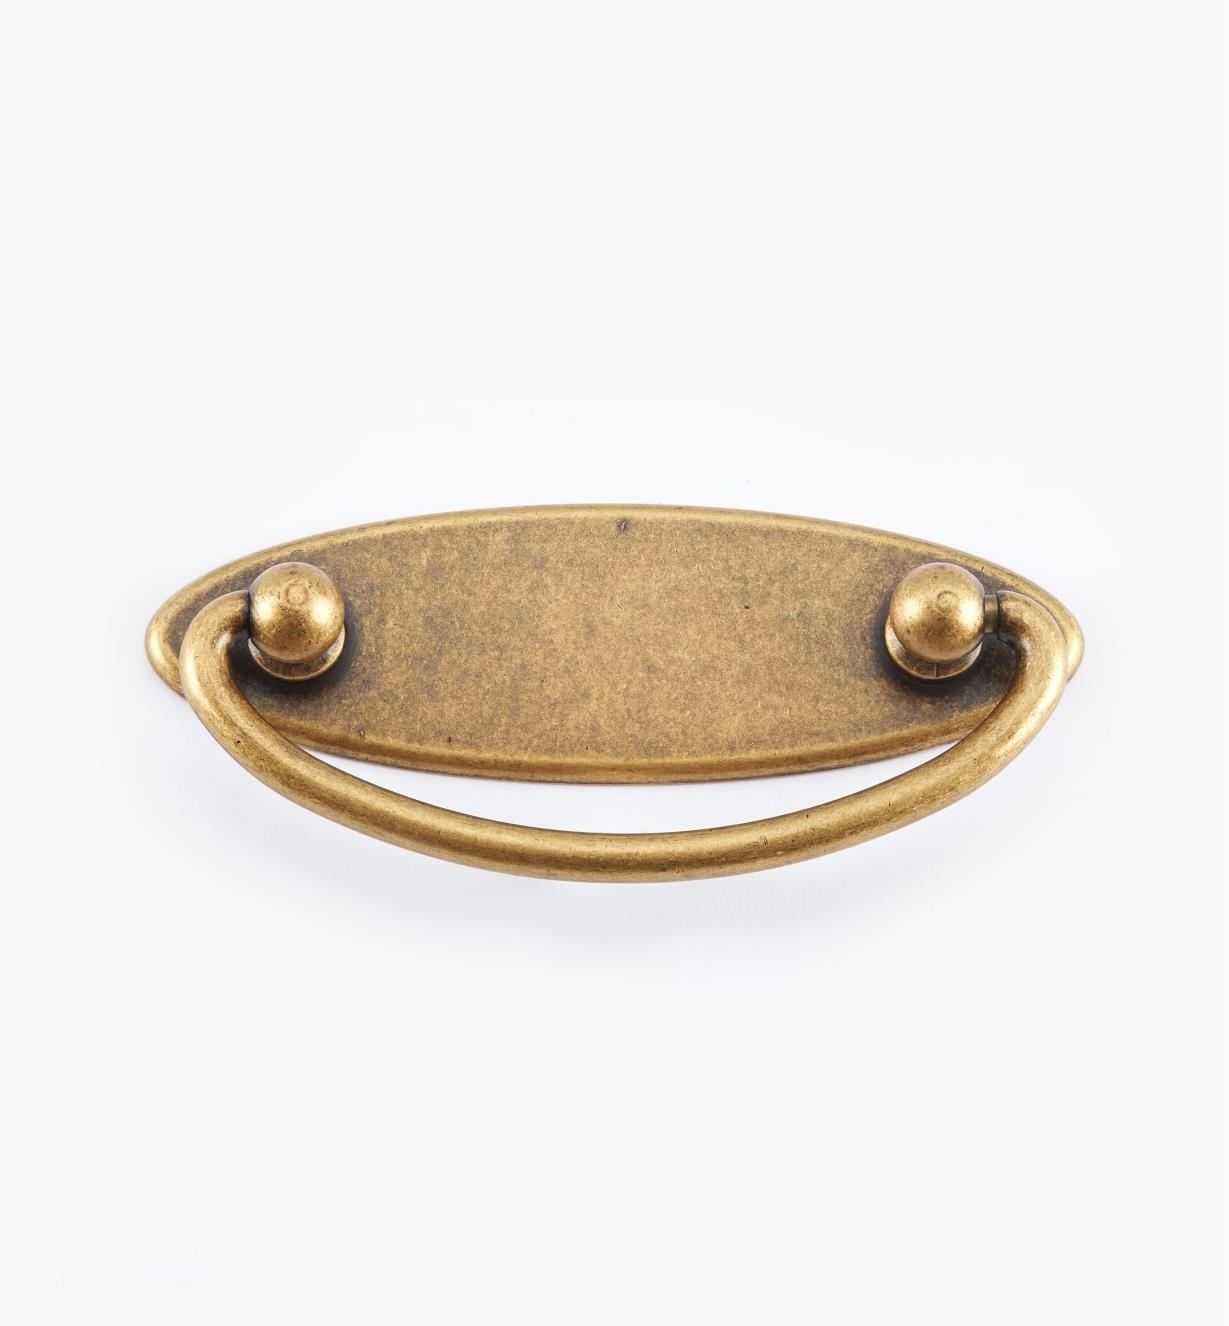 01X3010 - 64mm Antique Brass Plate Handle